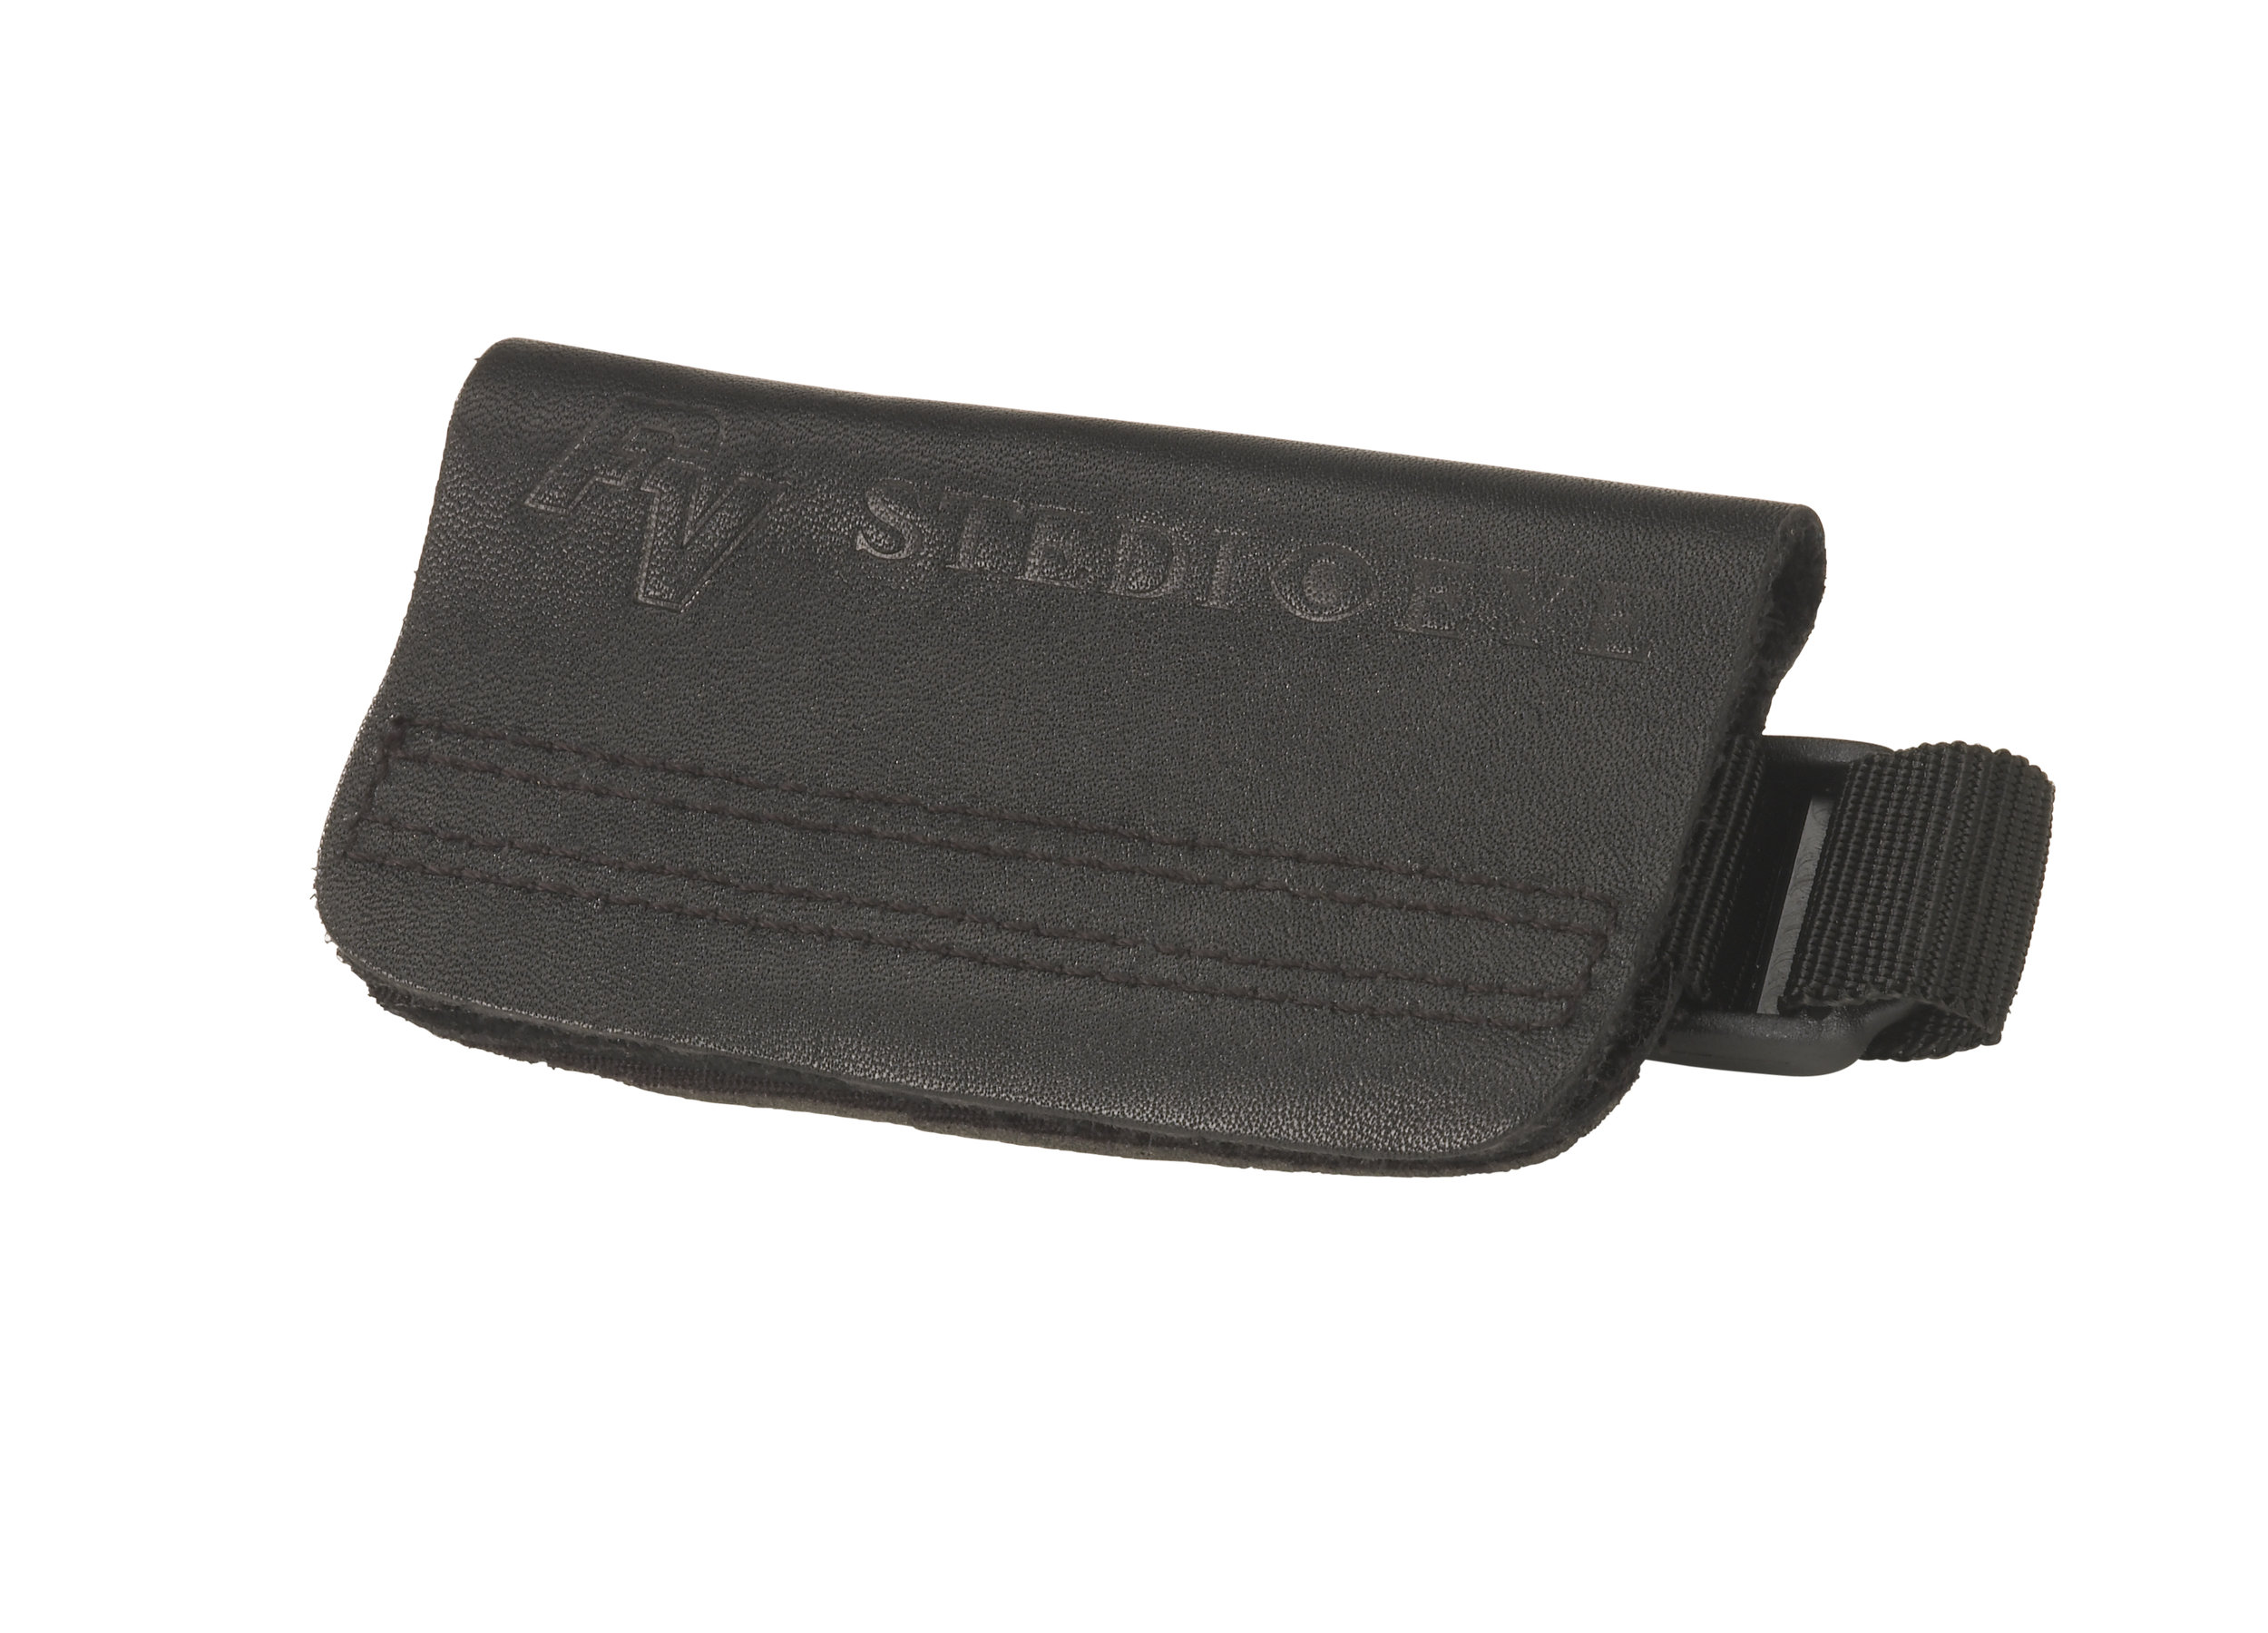 HANDSTRAP WITH LEATHER PAD - $12.30